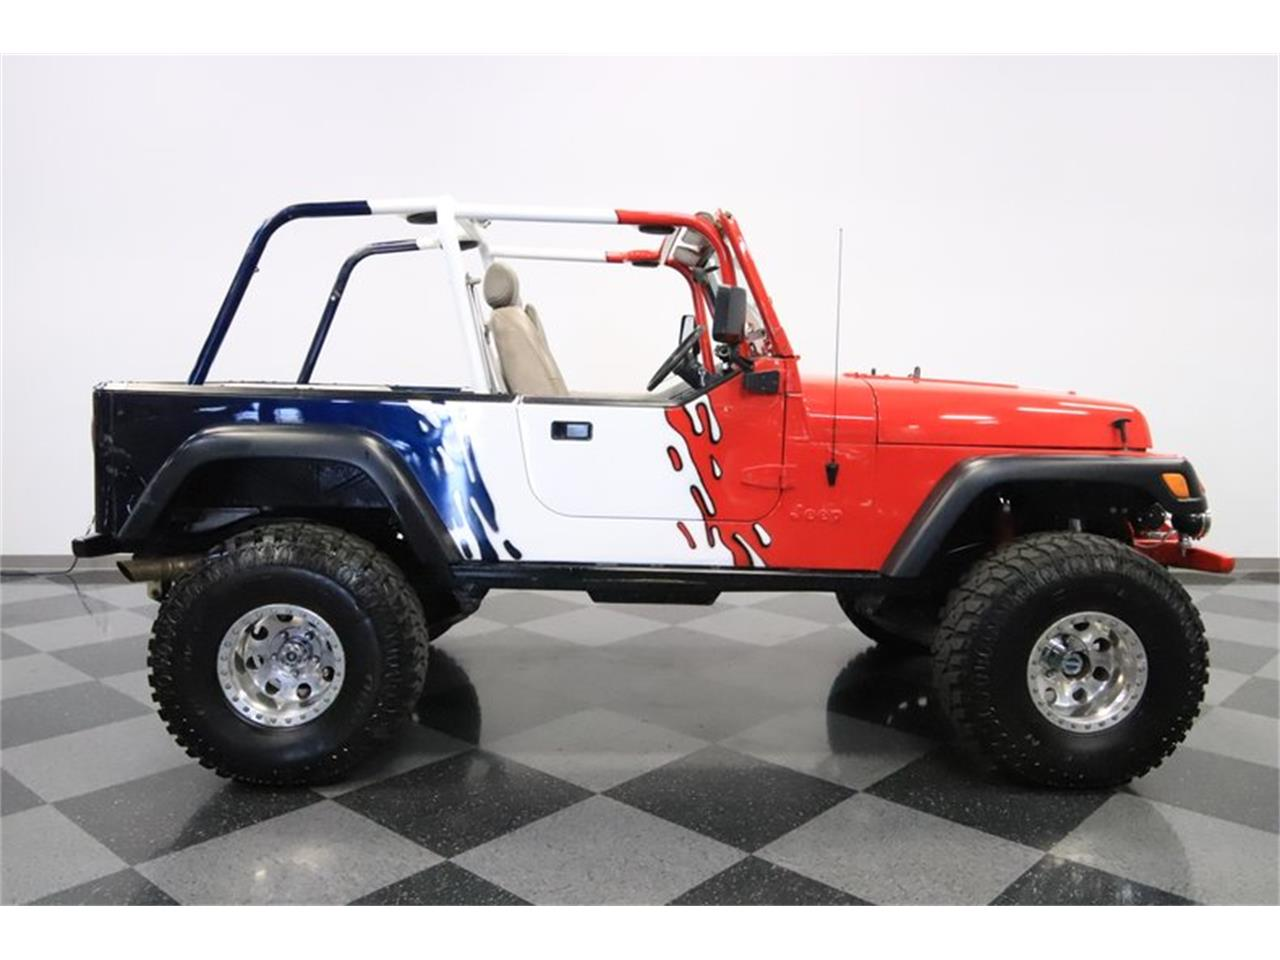 Large Picture of 1983 Jeep CJ8 Scrambler Offered by Streetside Classics - Phoenix - Q5HM